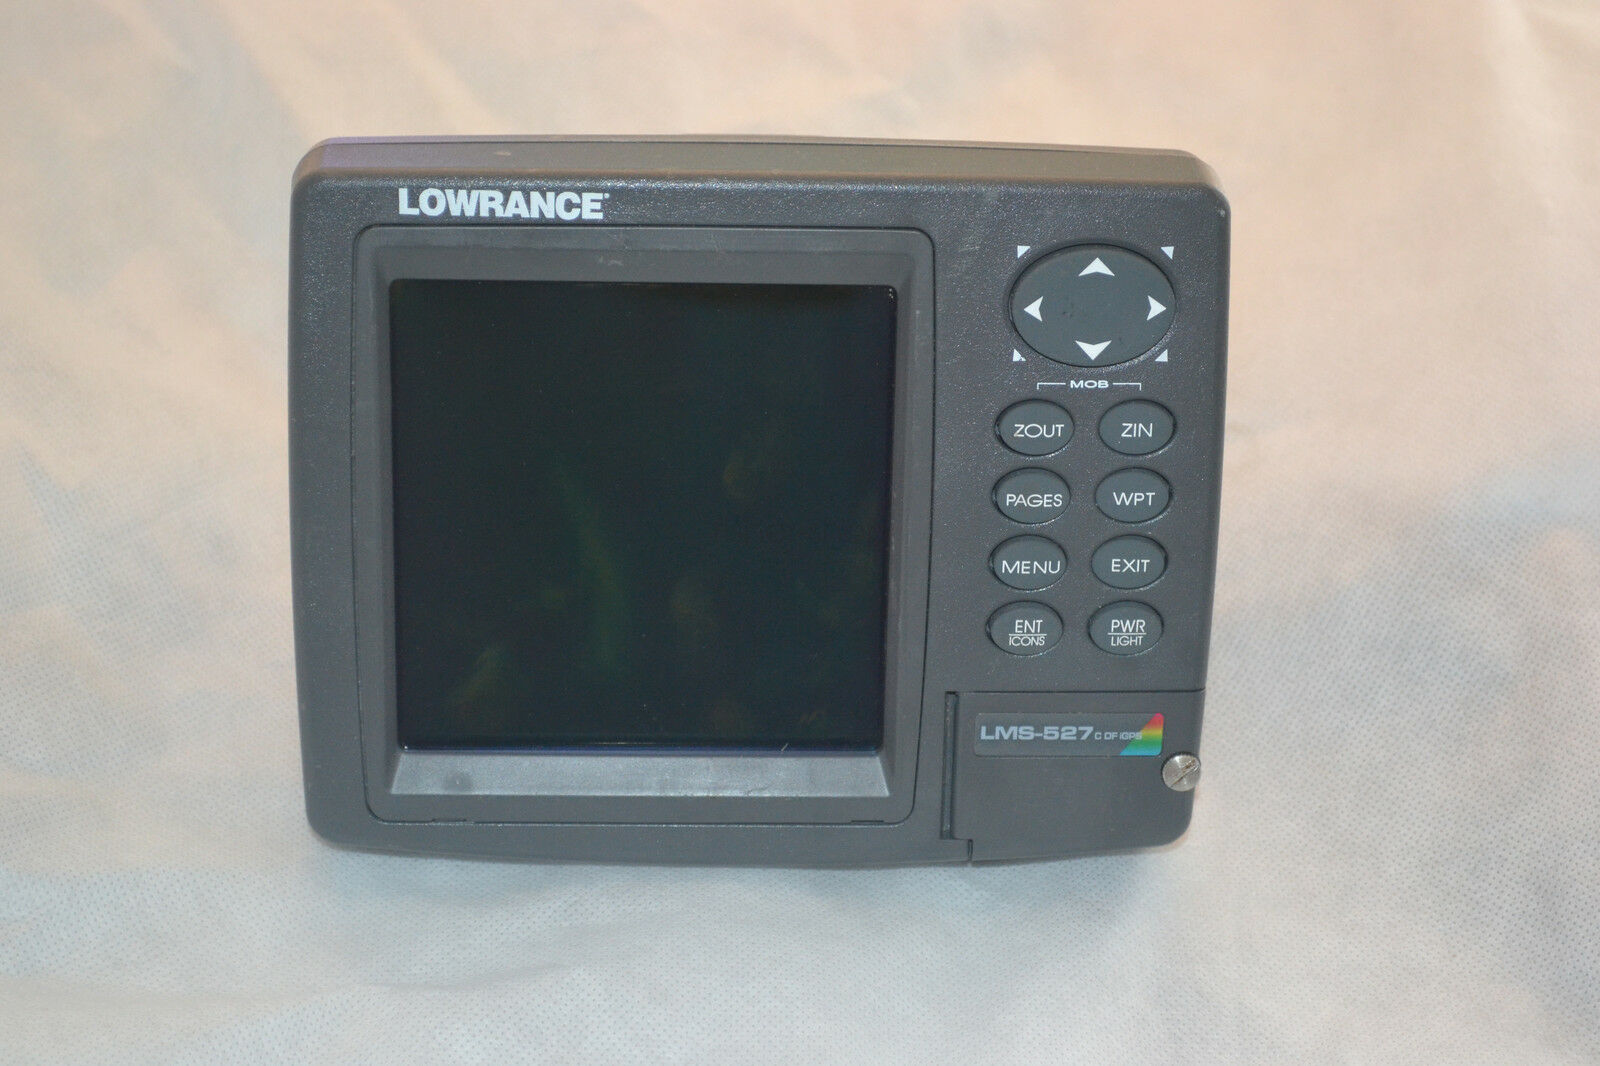 Lowrance LMS-527C DF iGPS built-in antenna GPS Fish finder (Only head & cover)